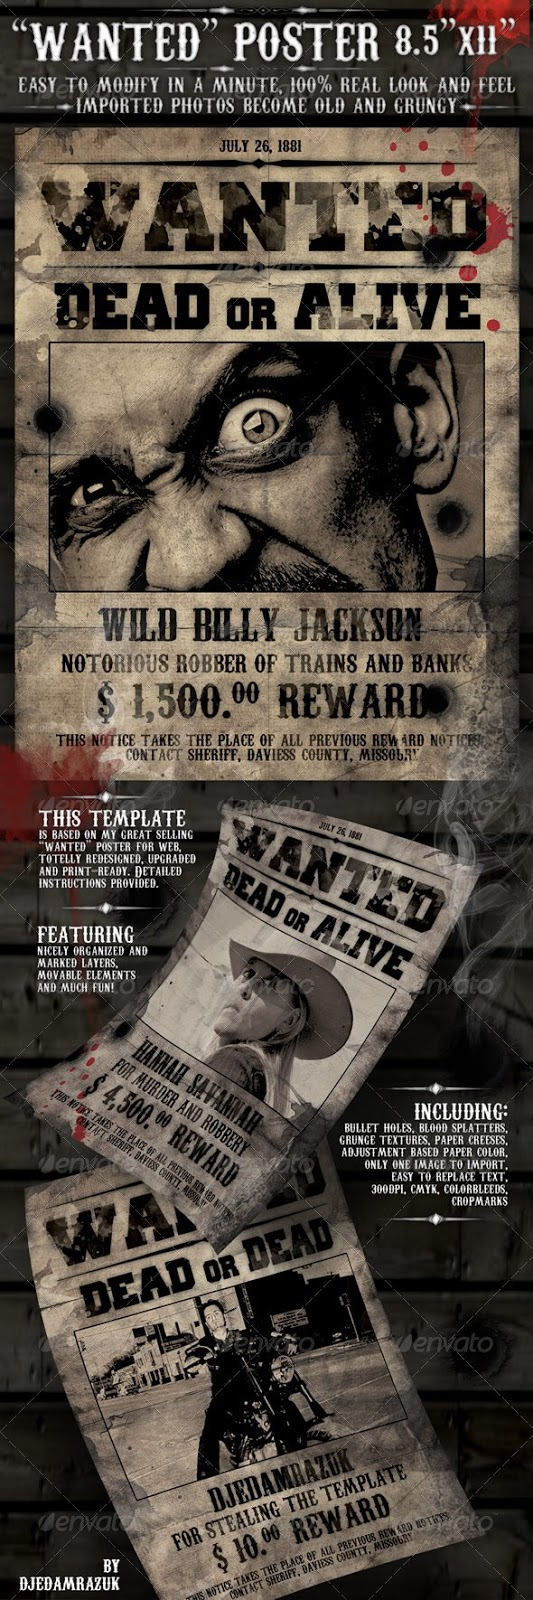 Best Wanted Poster Templates Psd Download  DesignsmagOrg